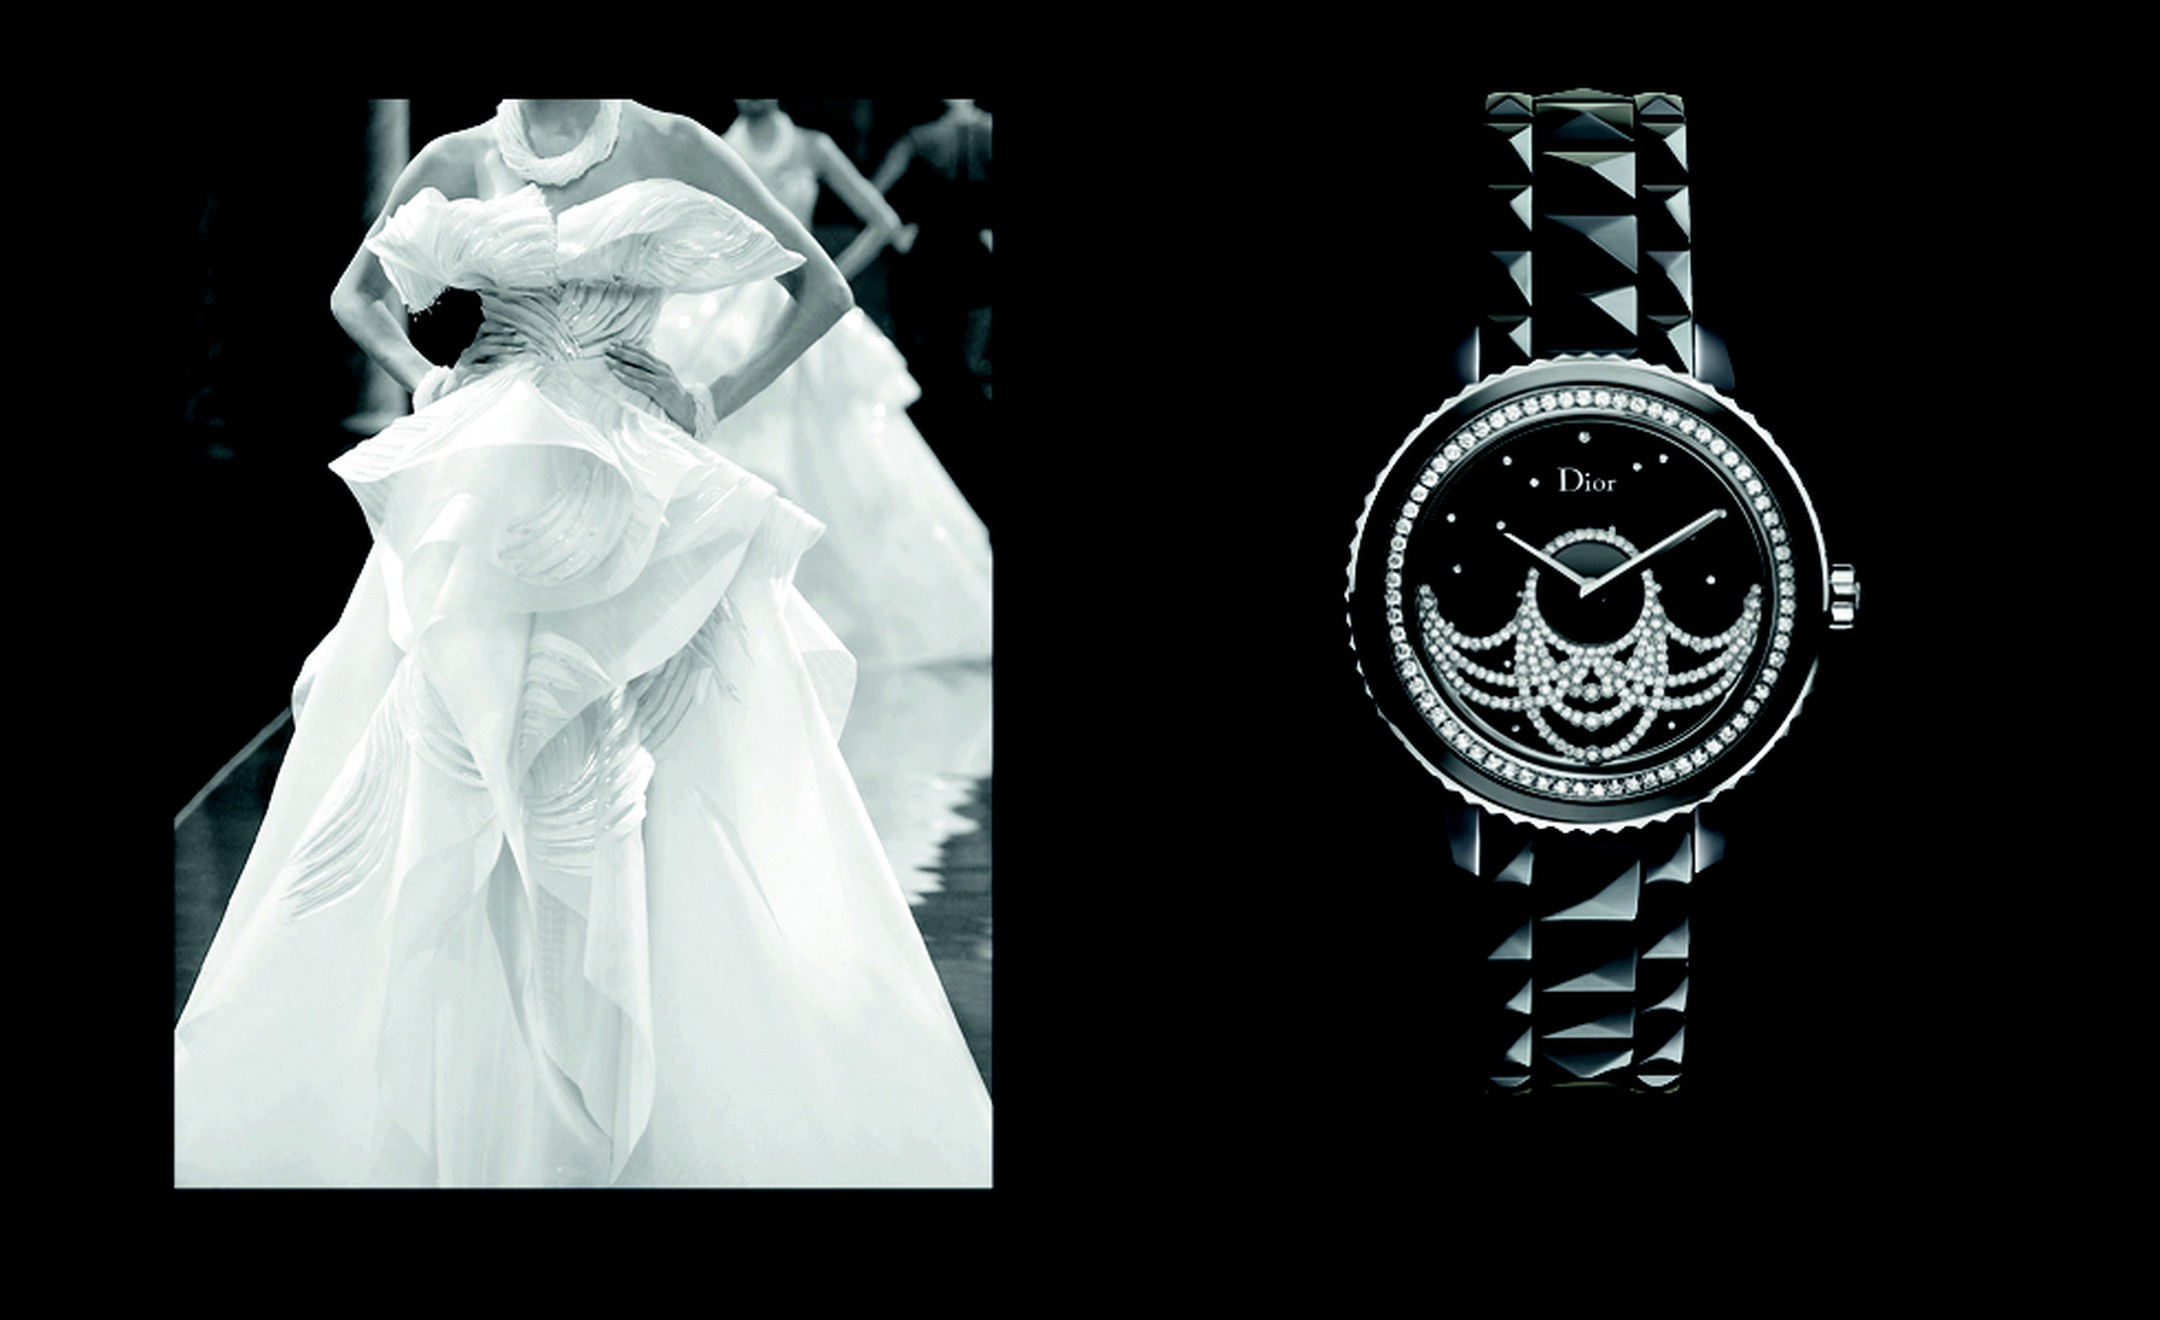 Dior VIII Grand Bal Broderie with diamonds in lace patterns. POA.